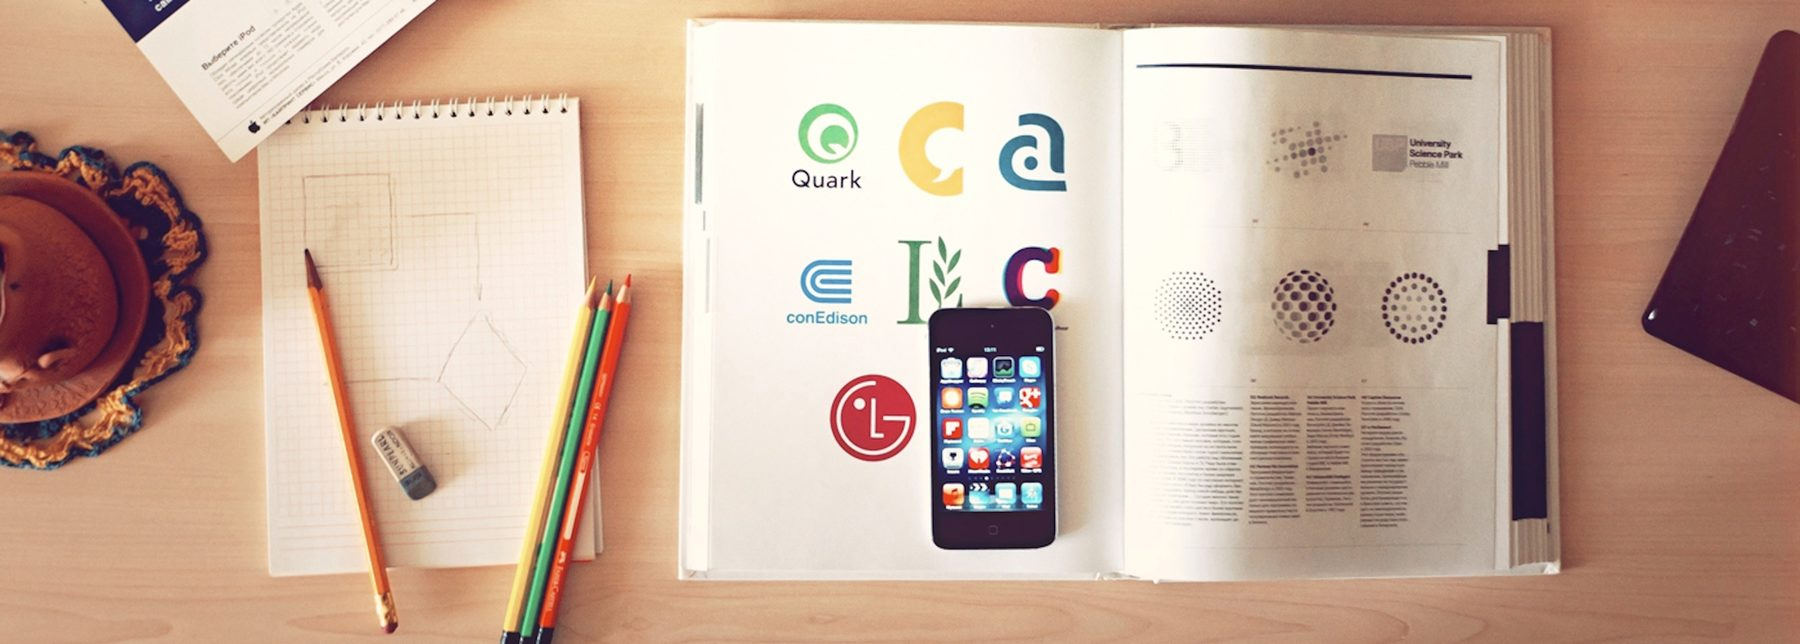 (Company Image (Hybrid Access: Mobile, Book, Paper, Designs, Table)